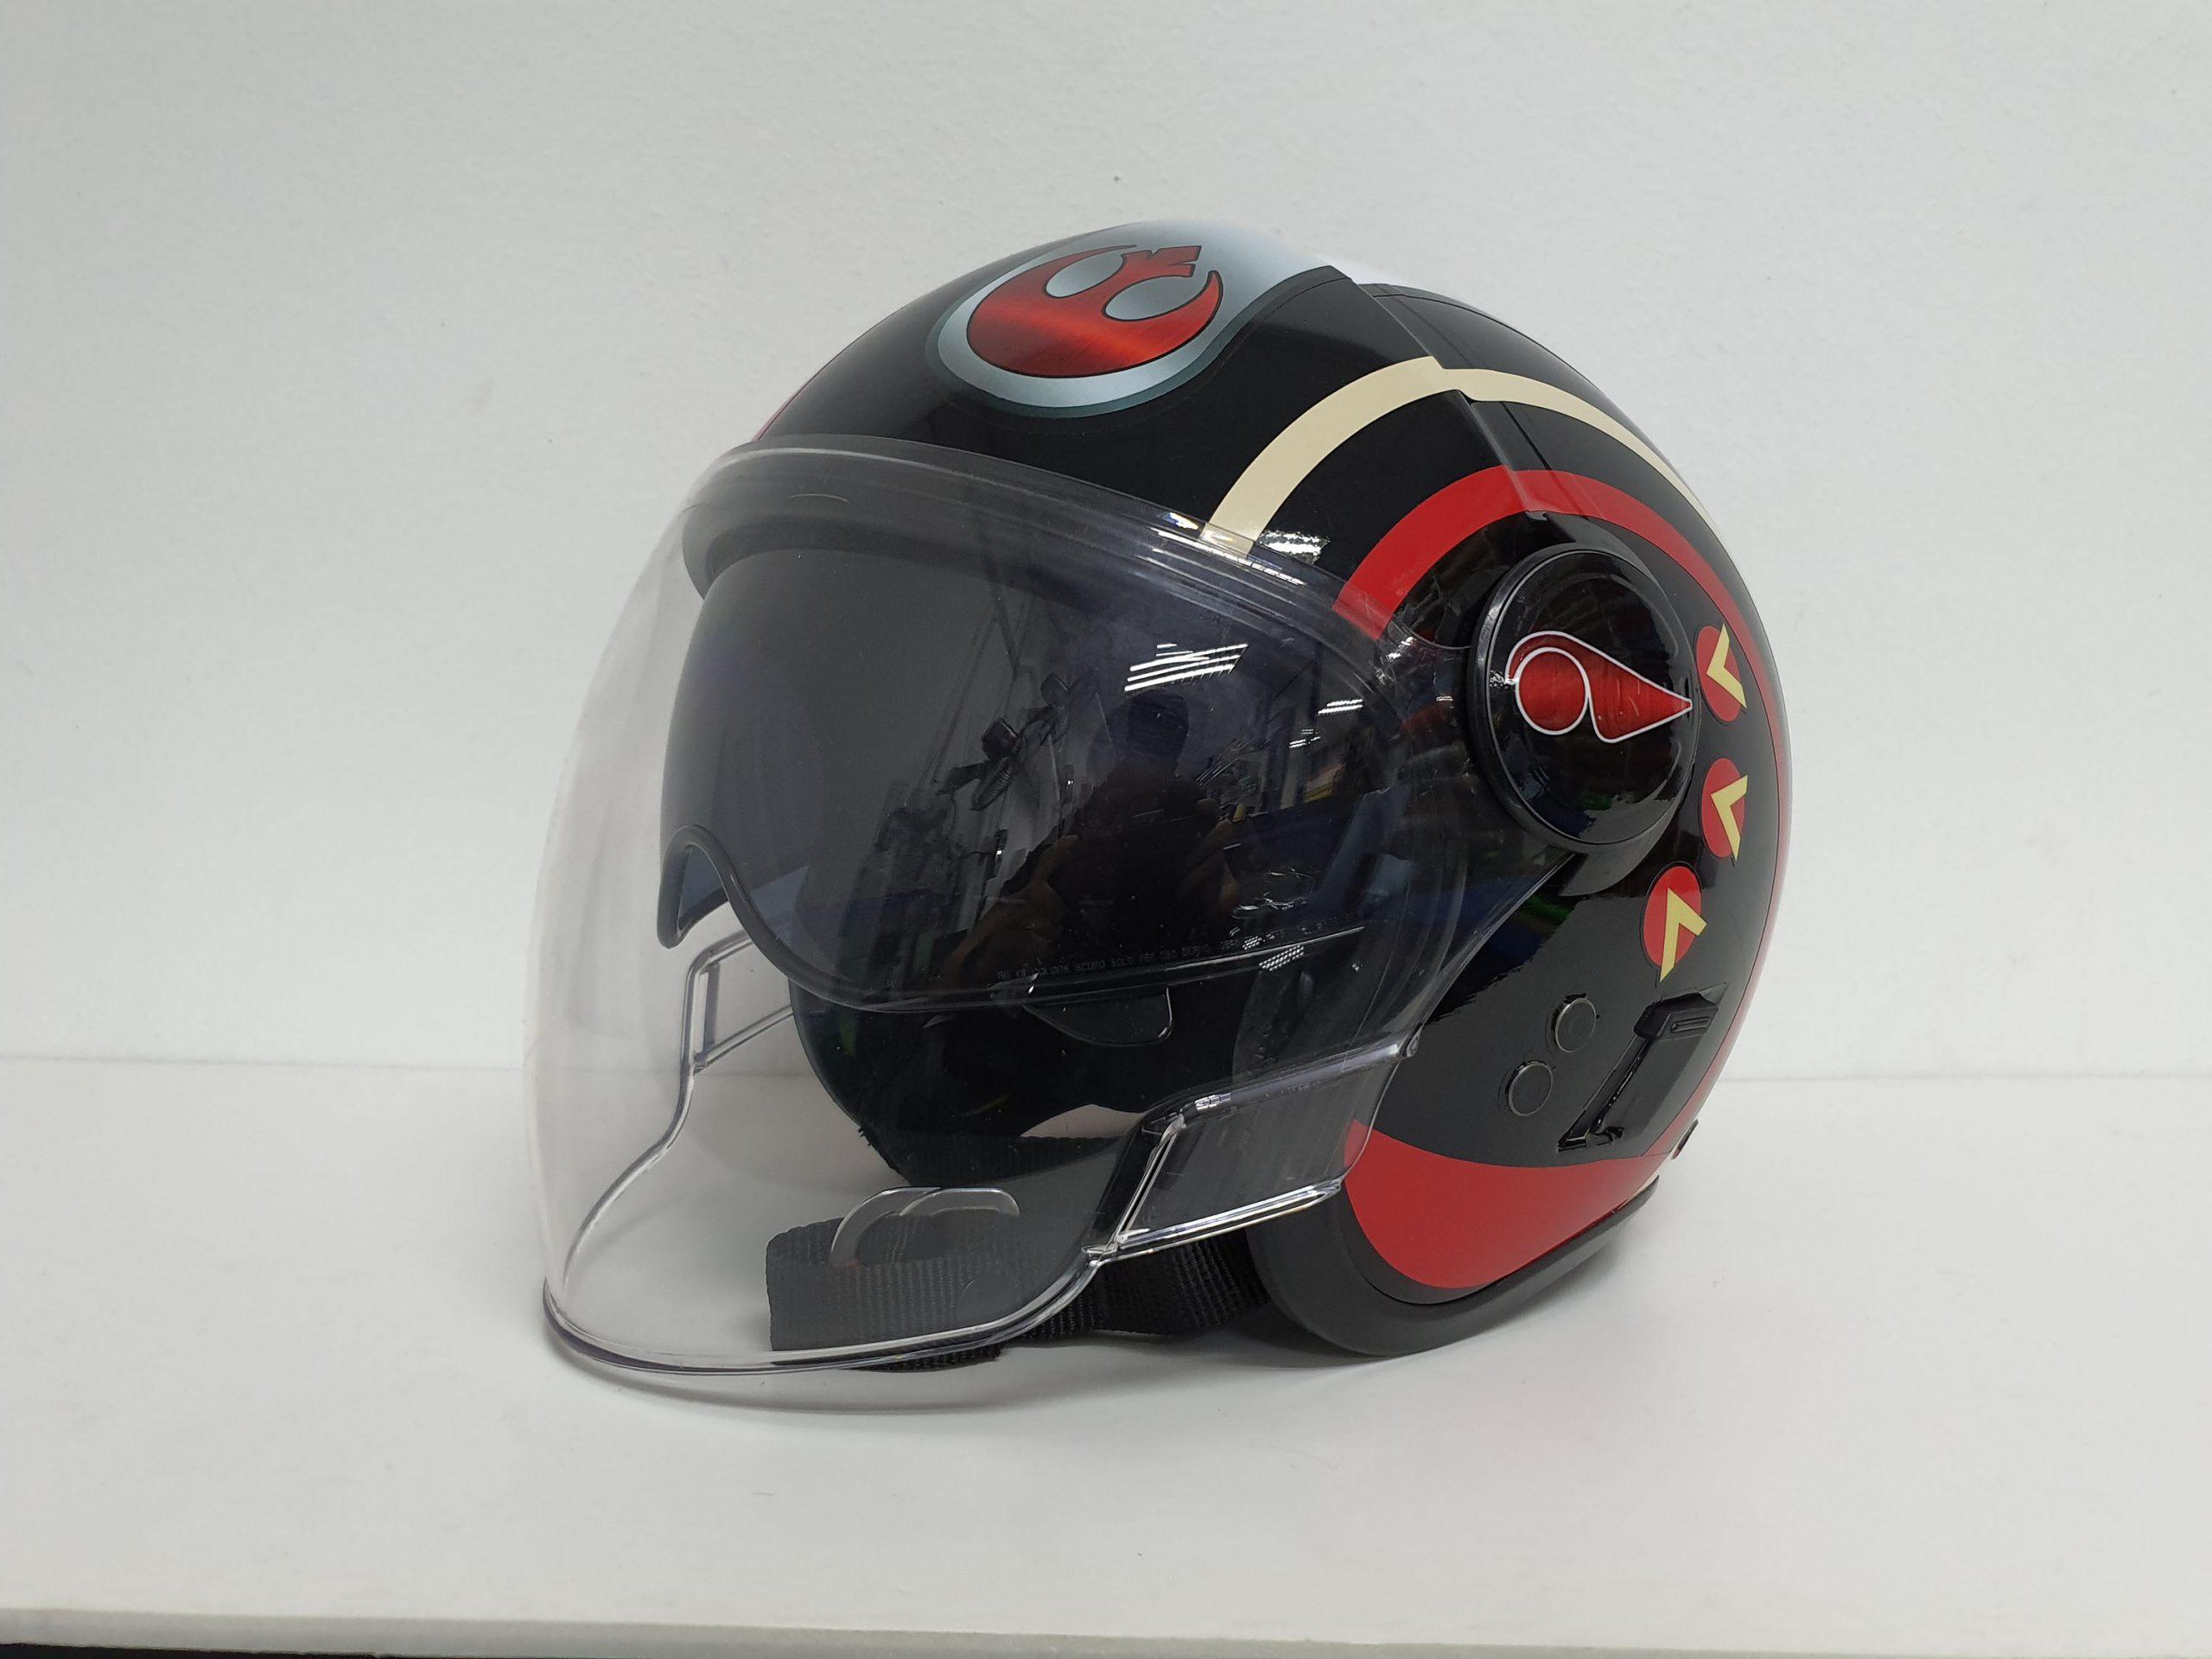 Starwars X-Wing Fighter Helmet Design